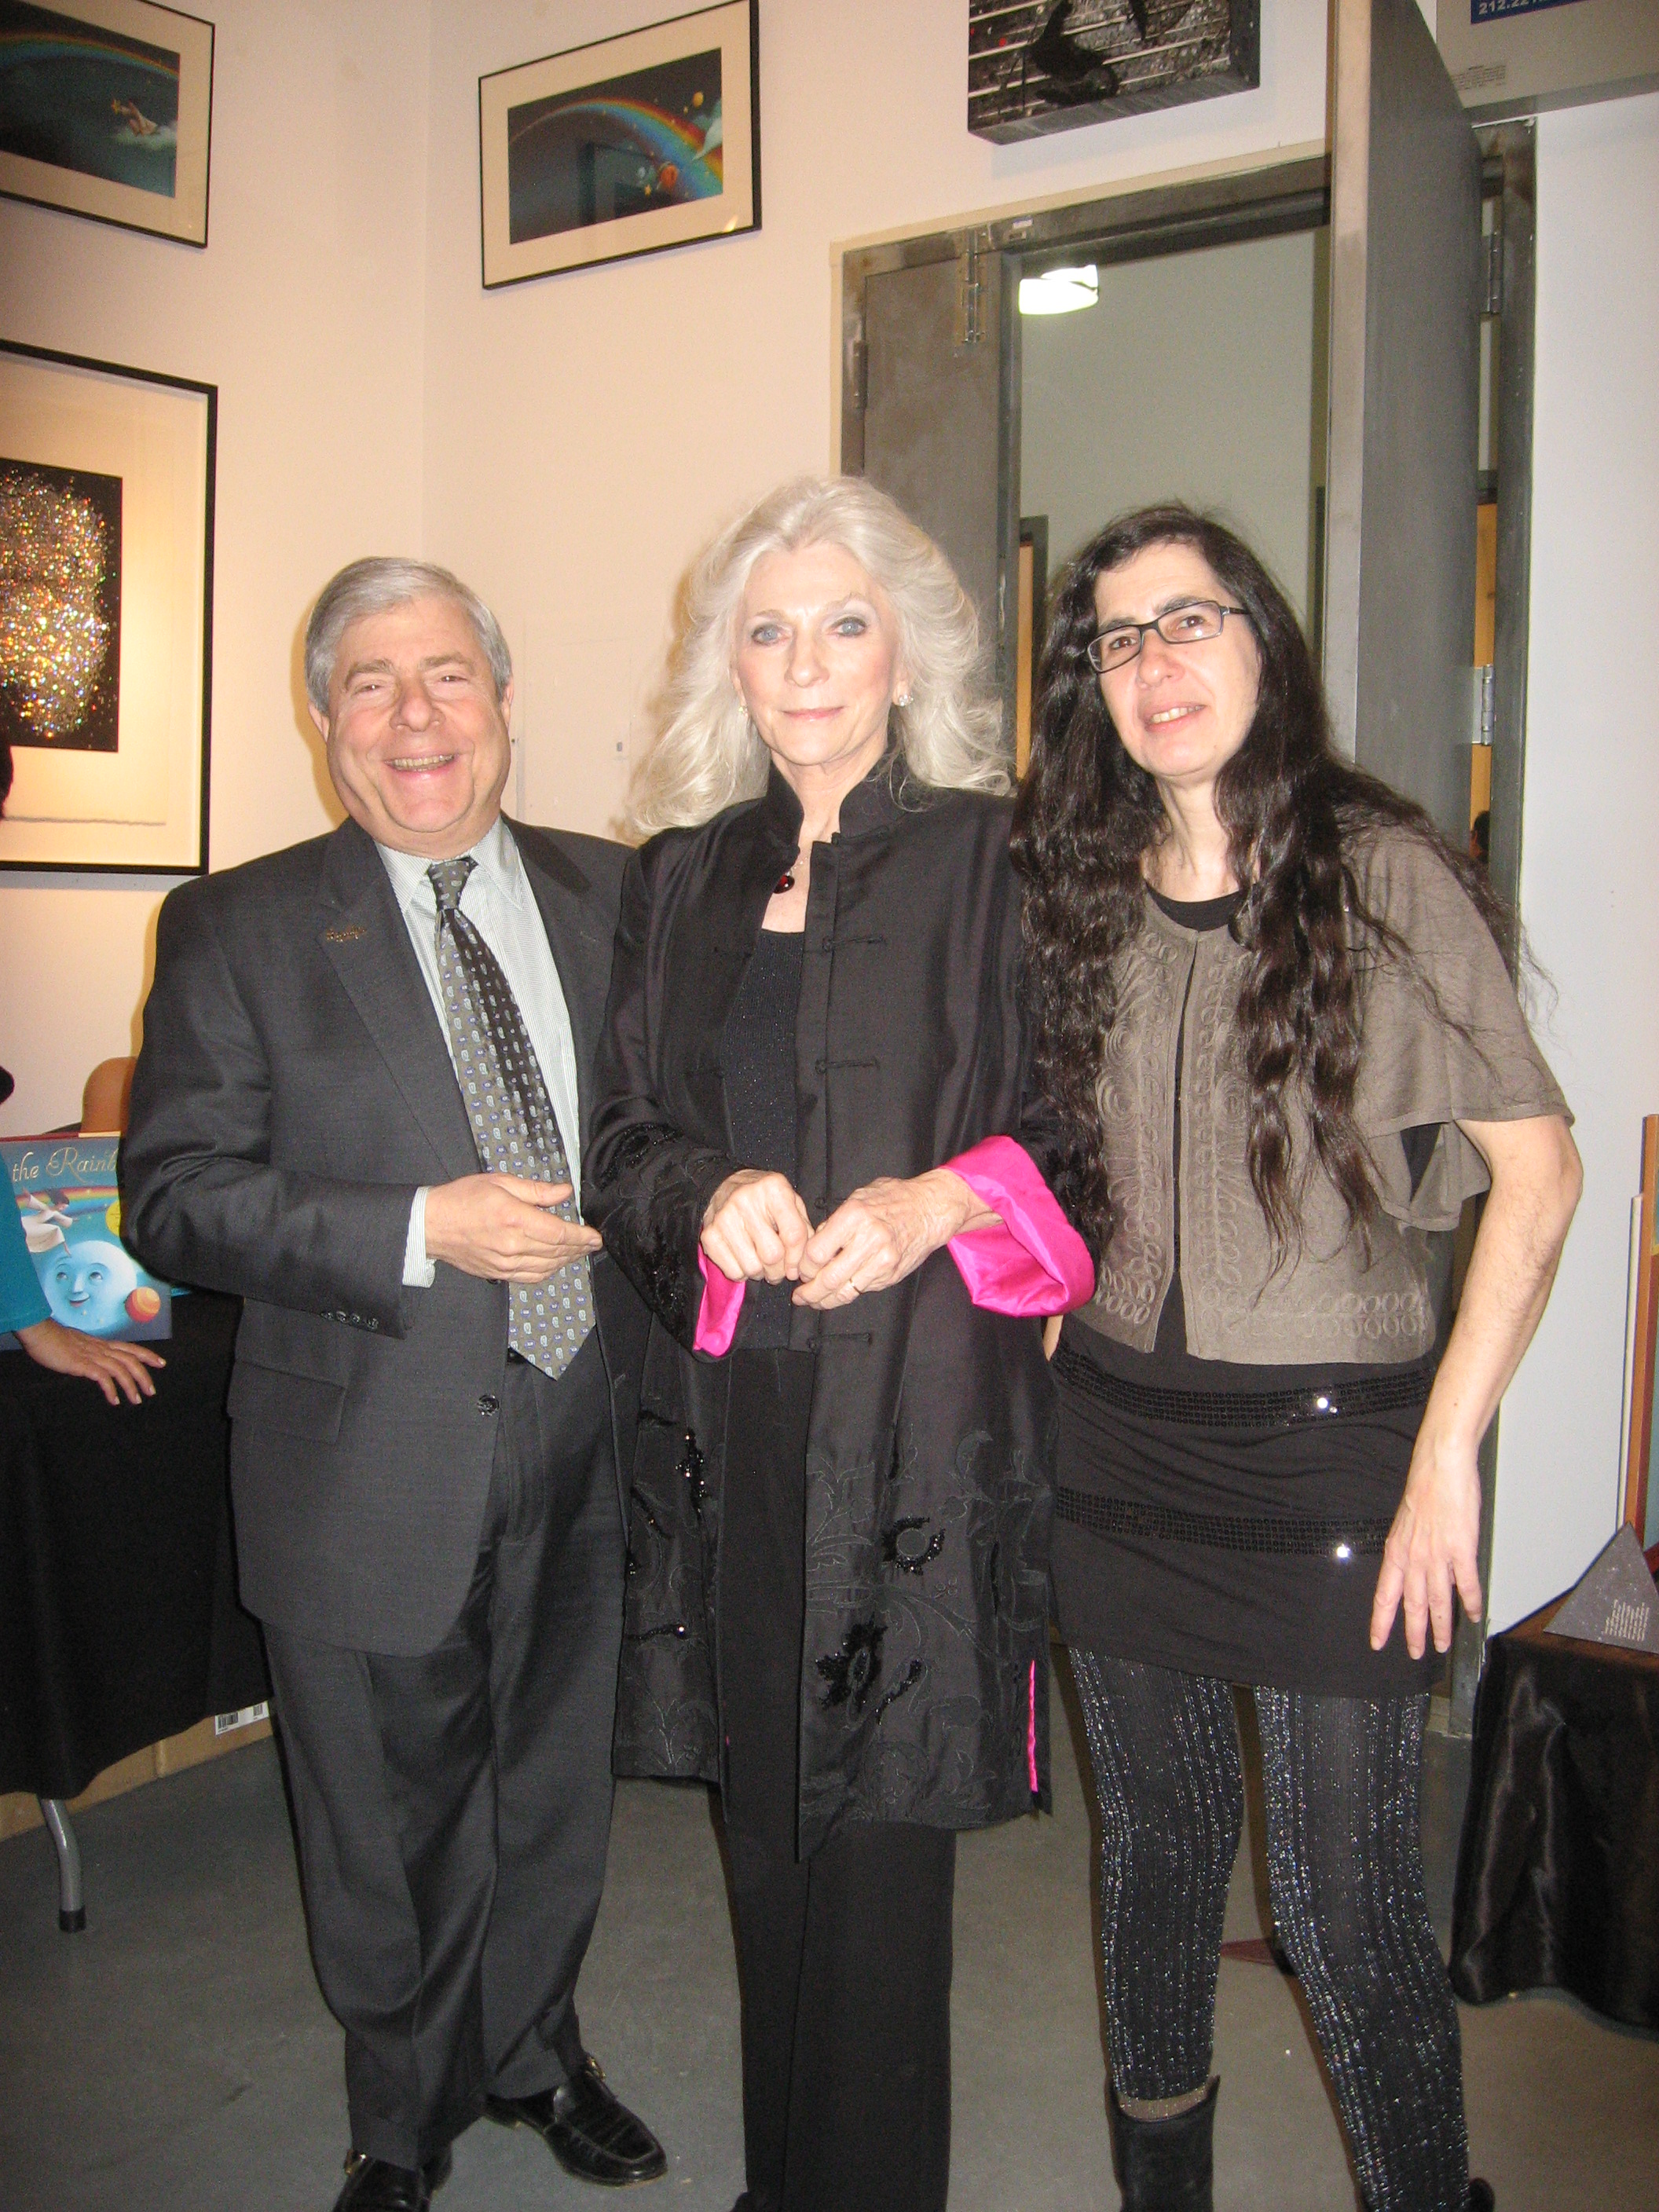 1_judy-collins_marty-markowitz_maddy-rosenberg_march_4_2010